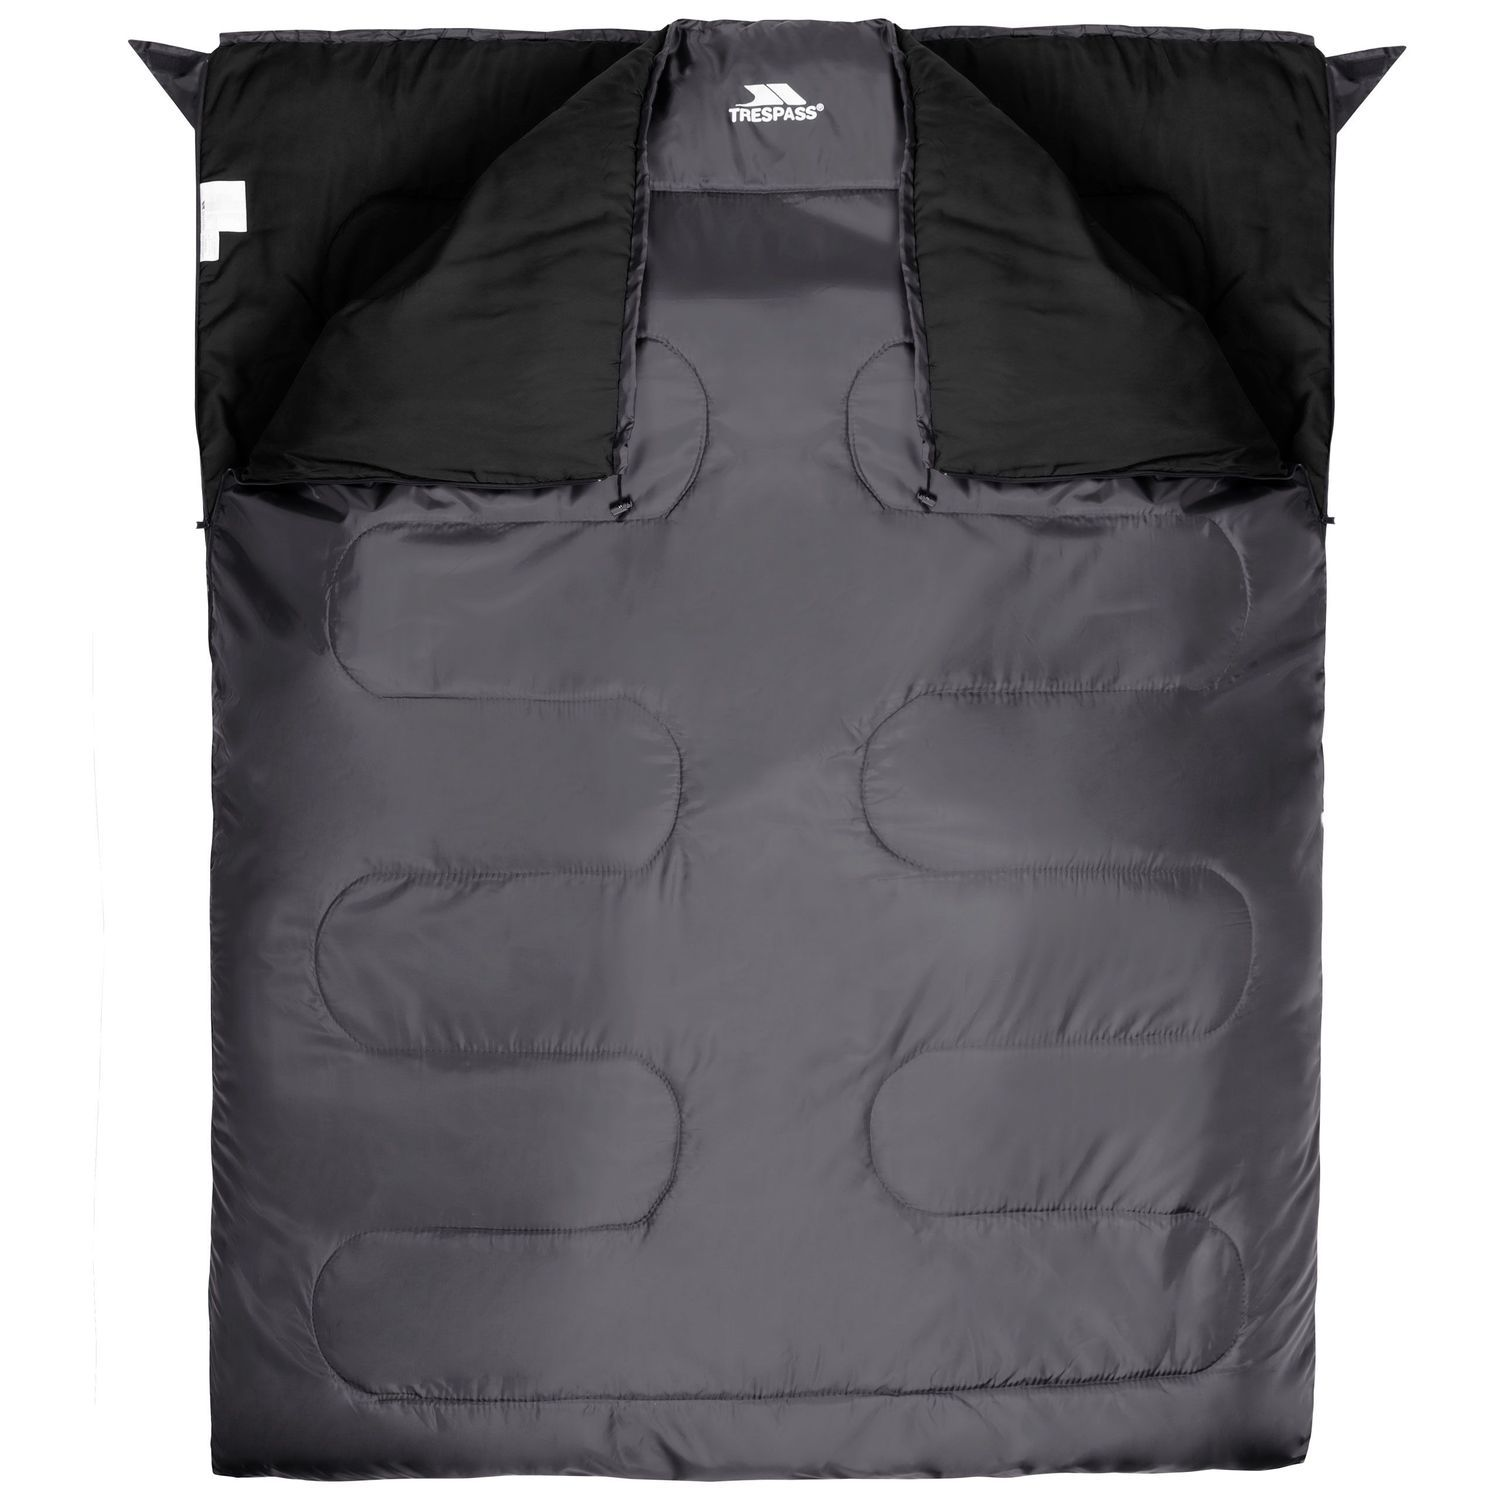 Trespass Catnap 3 Season Double Sleeping Bag - Granite